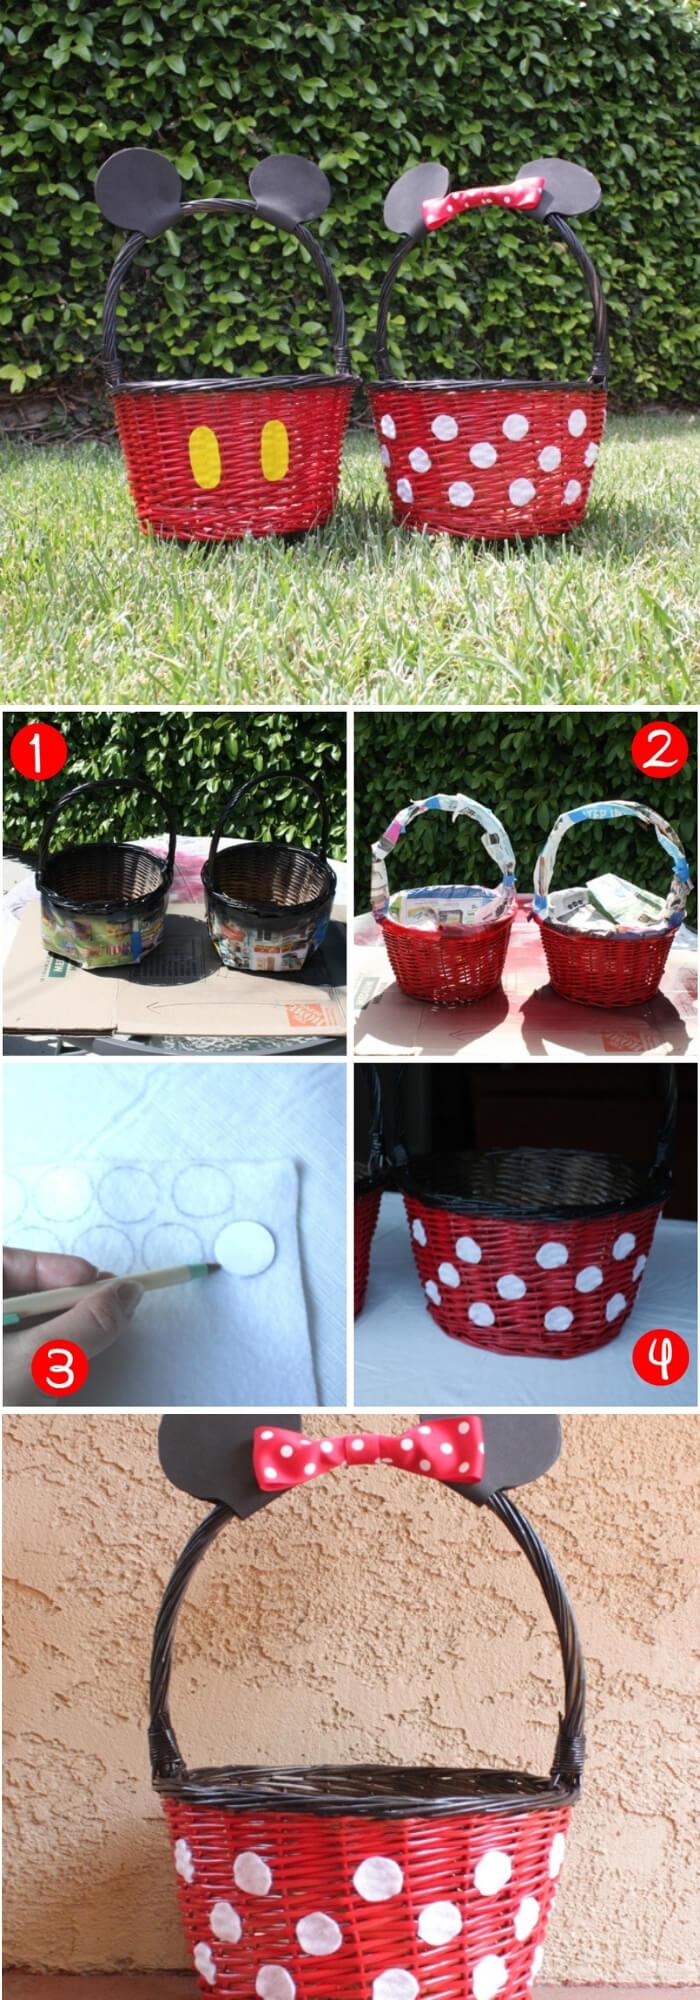 DIY Mickey and Minnie Easter Baskets | Fun & Creative Easter Basket Ideas